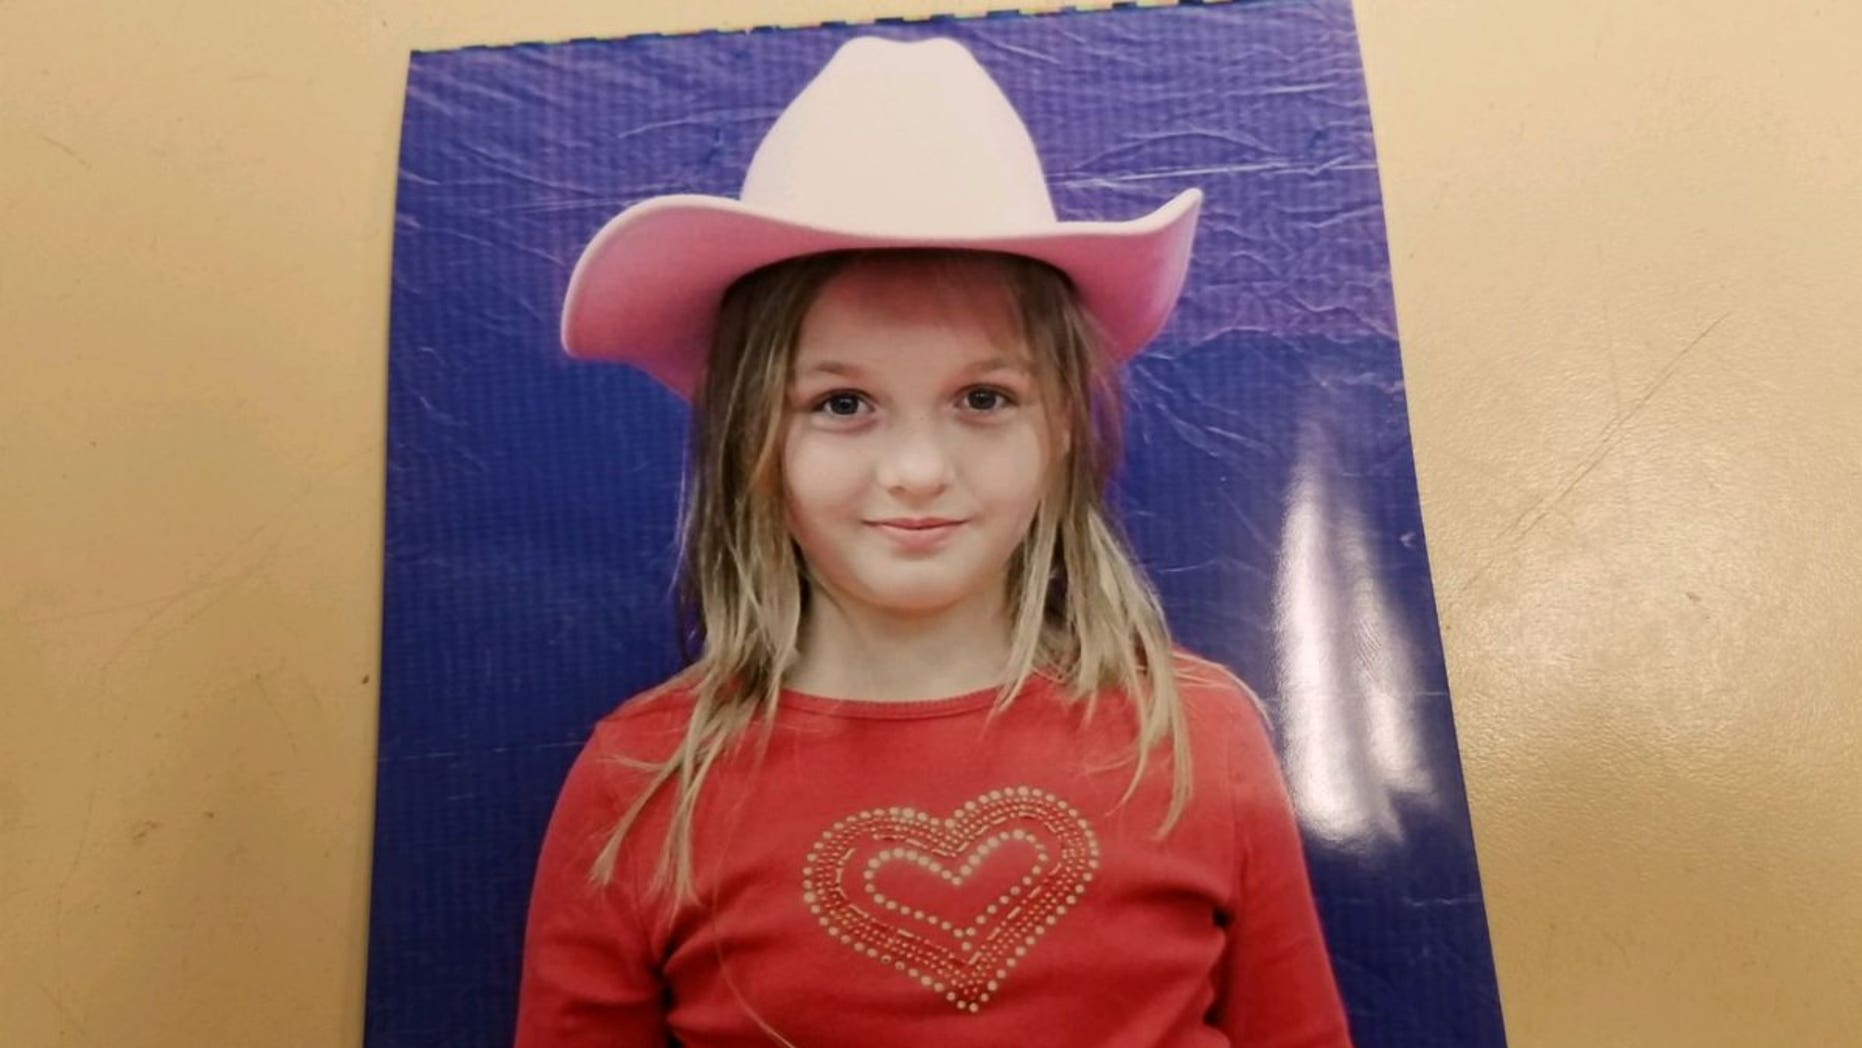 It's unlikely that Serenity Dennard, 9, survived after leaving a children's home last Sunday, authorities say. (Pennington County Sheriff's Office)